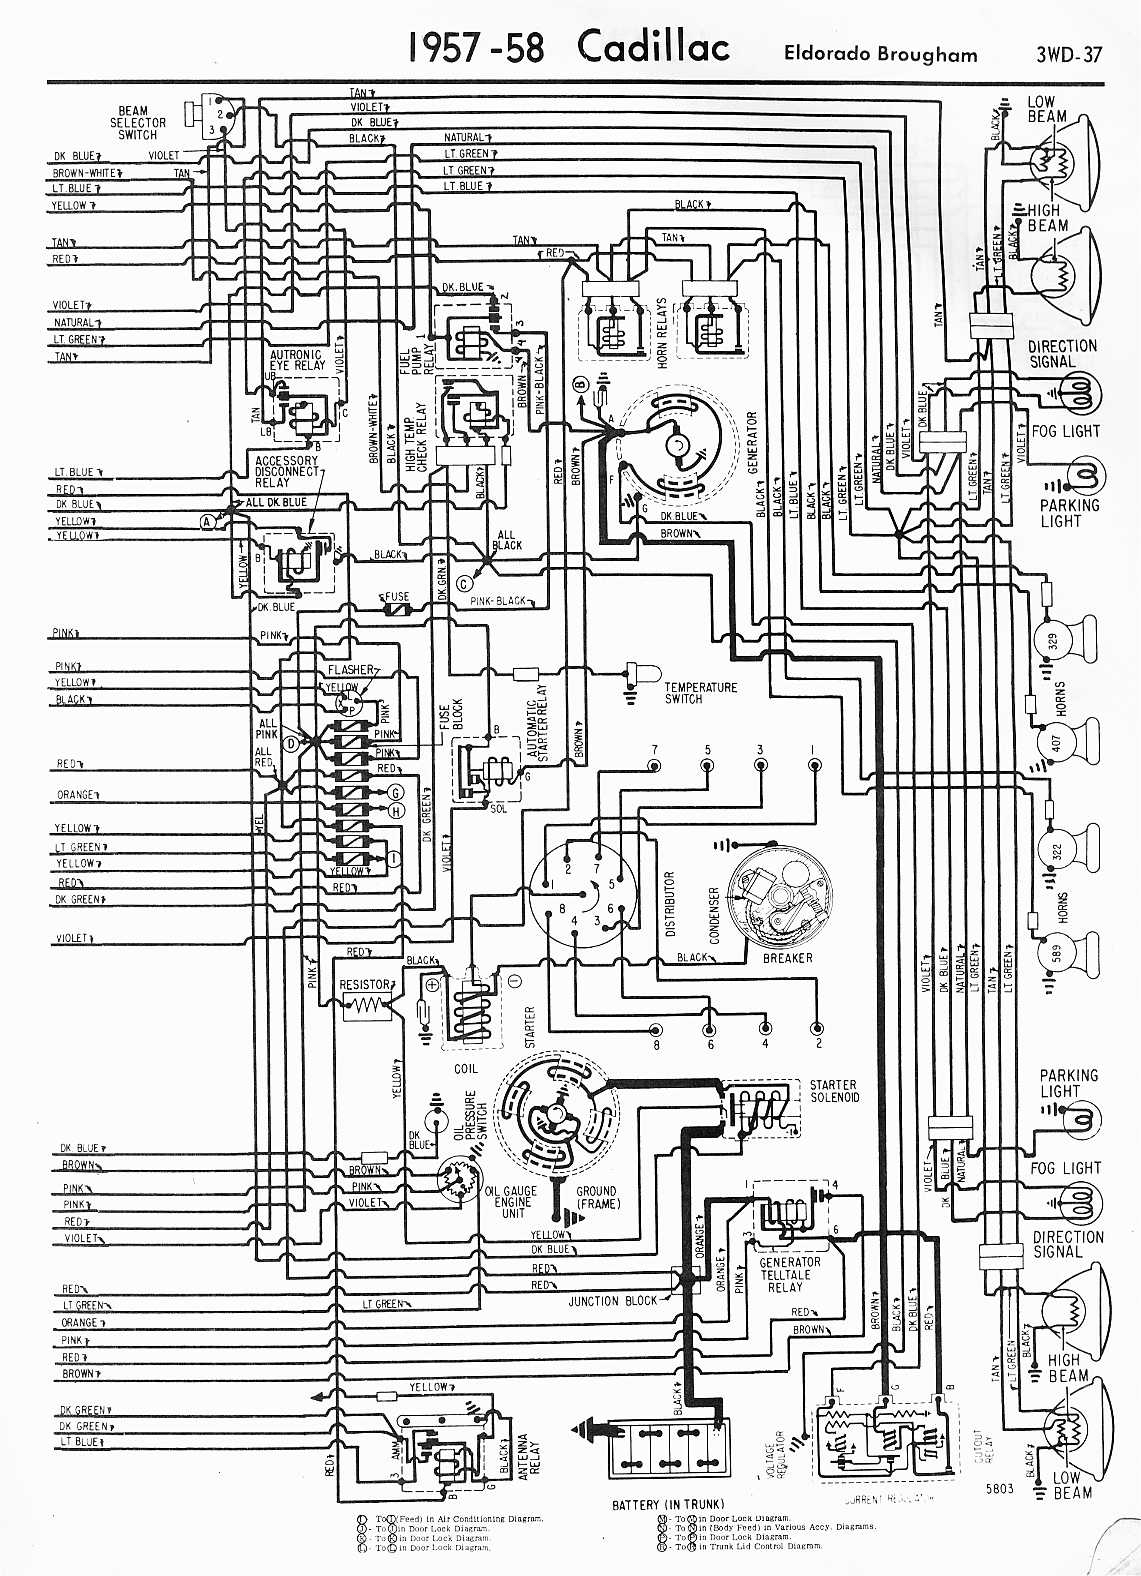 Cadillac Wiring Diagram Pictures To Pin On Pinterest PinsDaddy - 1979 cadillac wiring diagrams